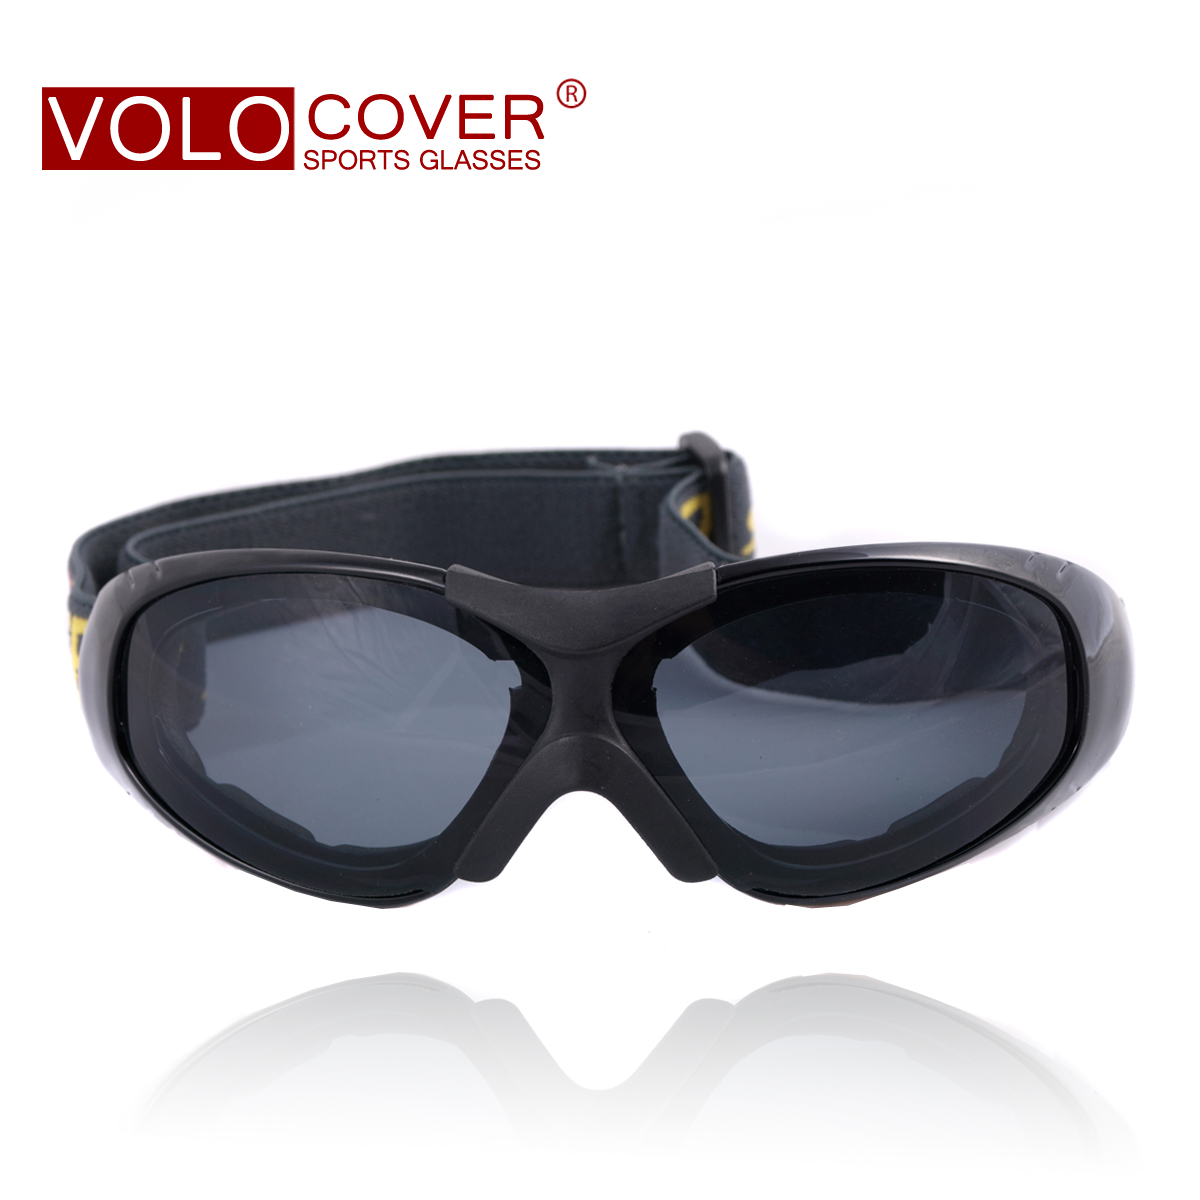 VOLO Outdoor Windscreen Goggles Riding Goggles Motorcycle Goggles Ultraviolet Protection and Sand Protection